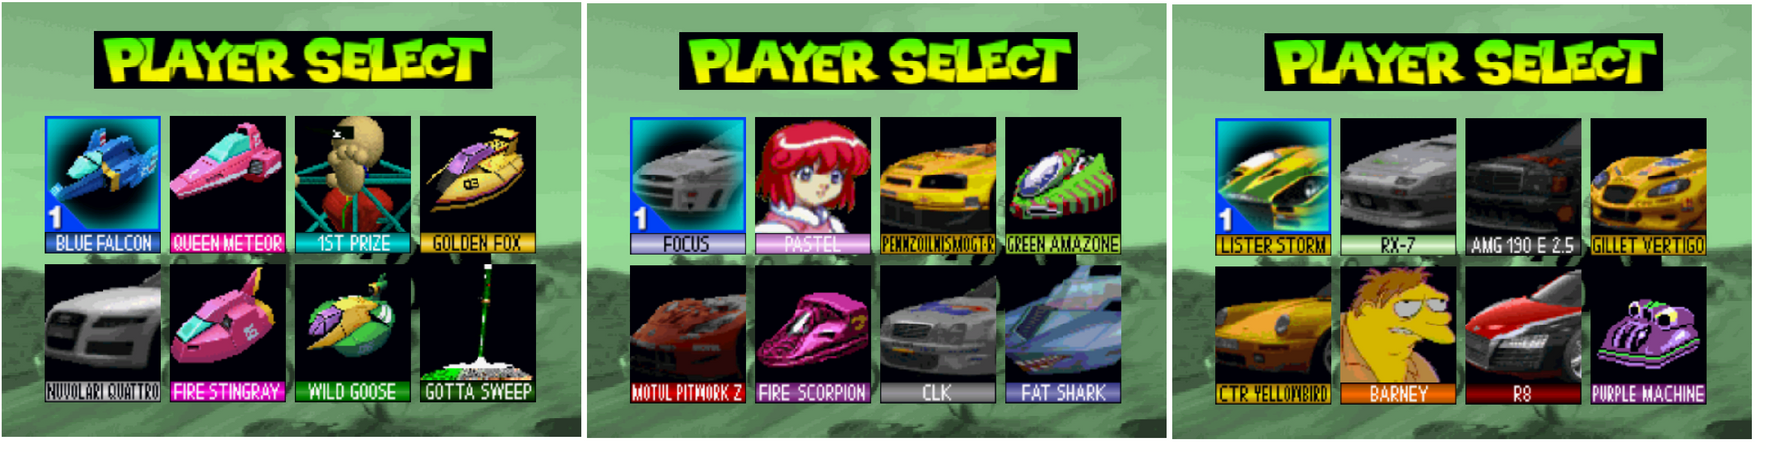 MK64 - TFG's Hack - 3 Roster New Drivers Reveal by TeamFaustGames